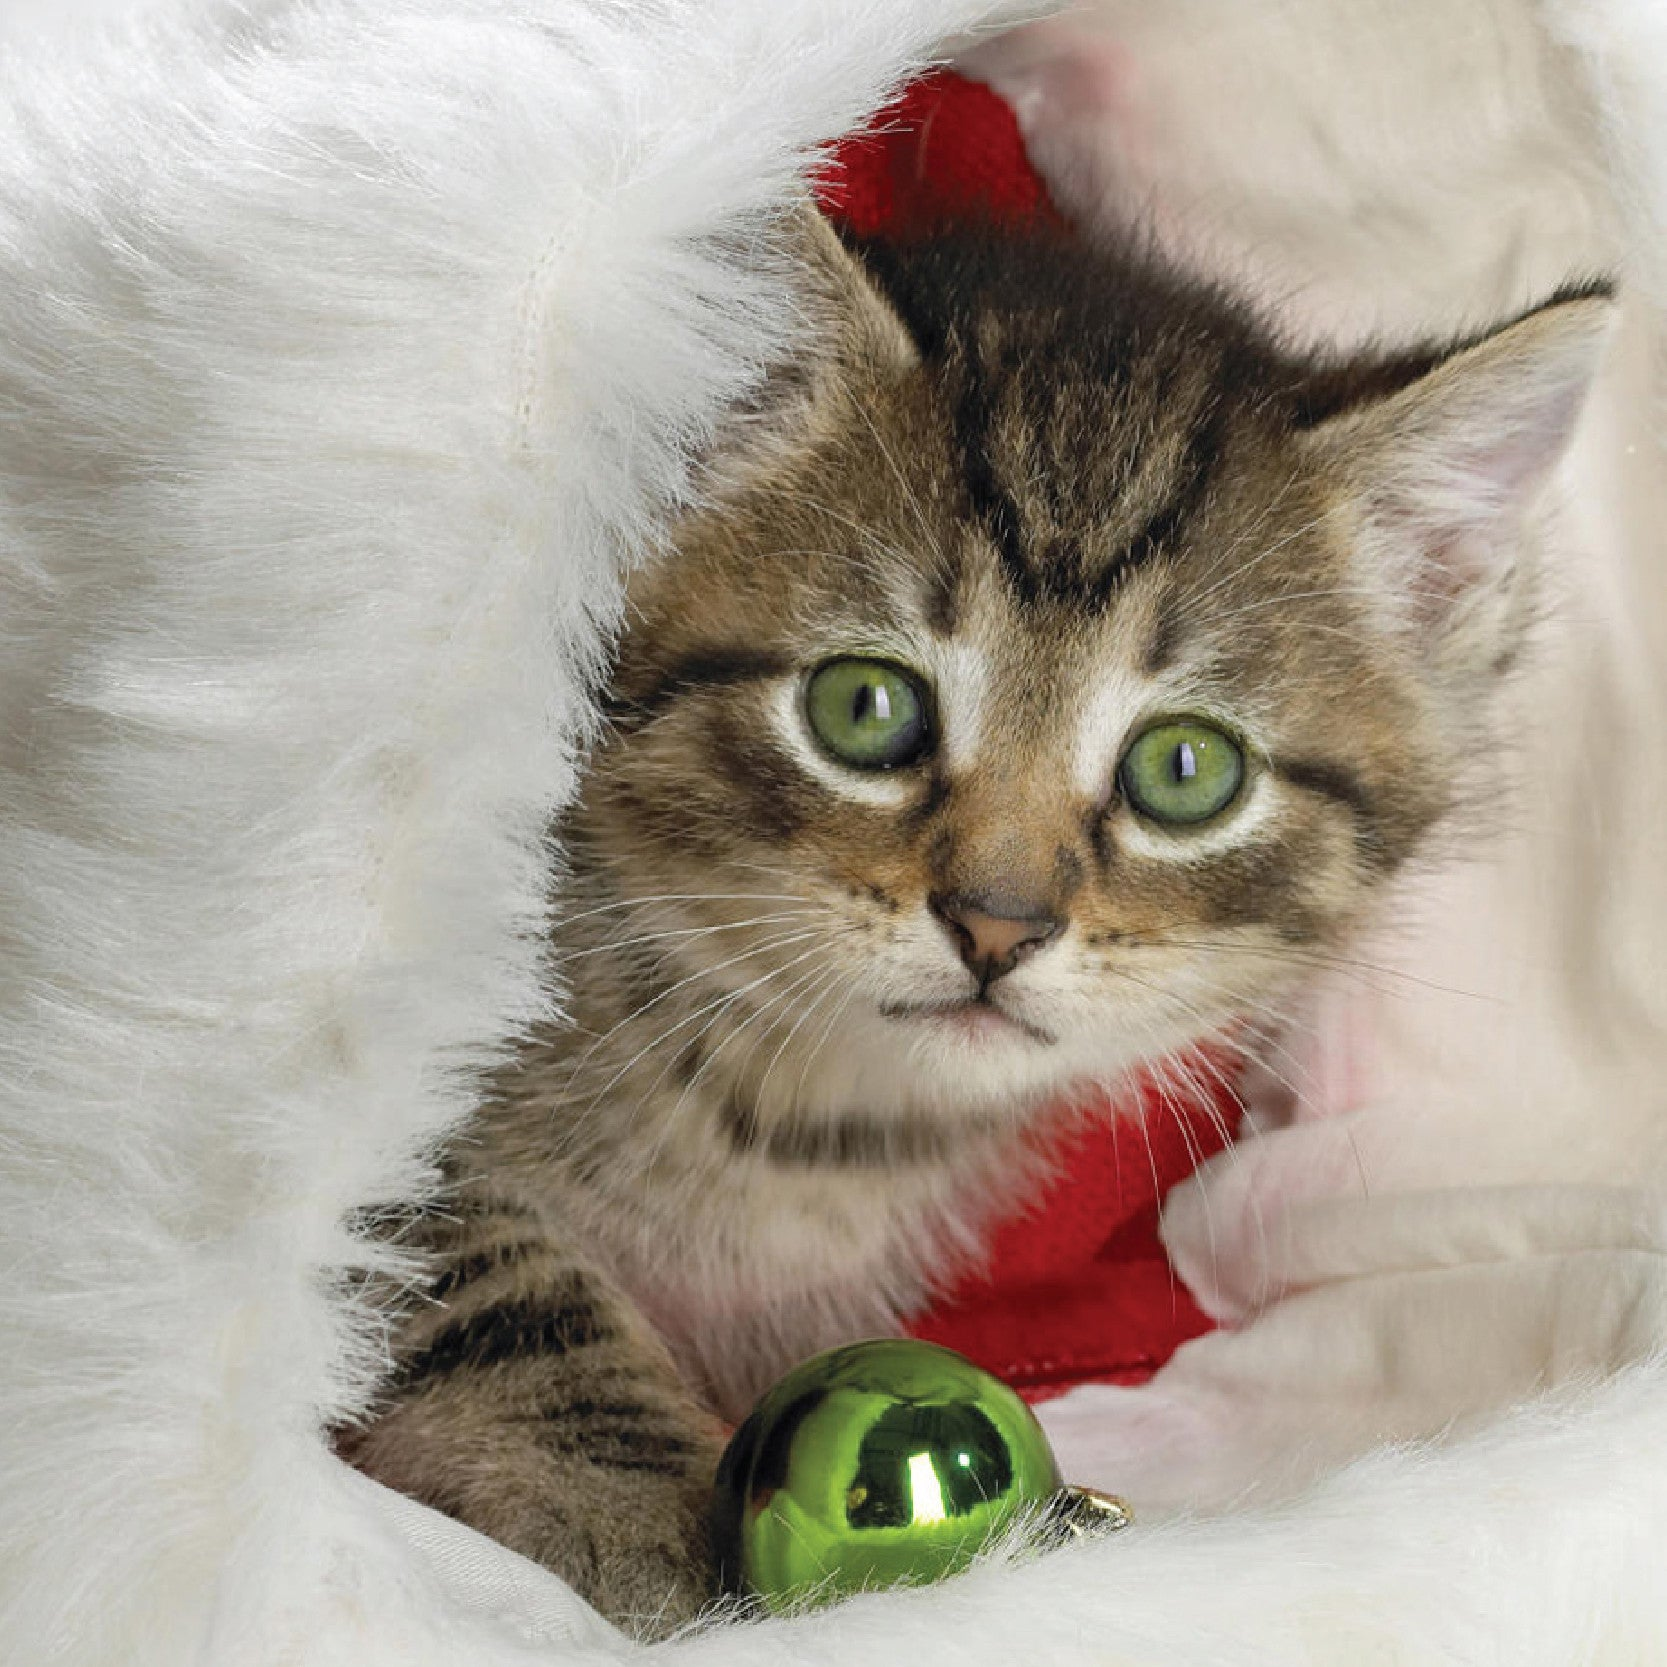 Pet Safety tips for the Holidays by Norma Mendez